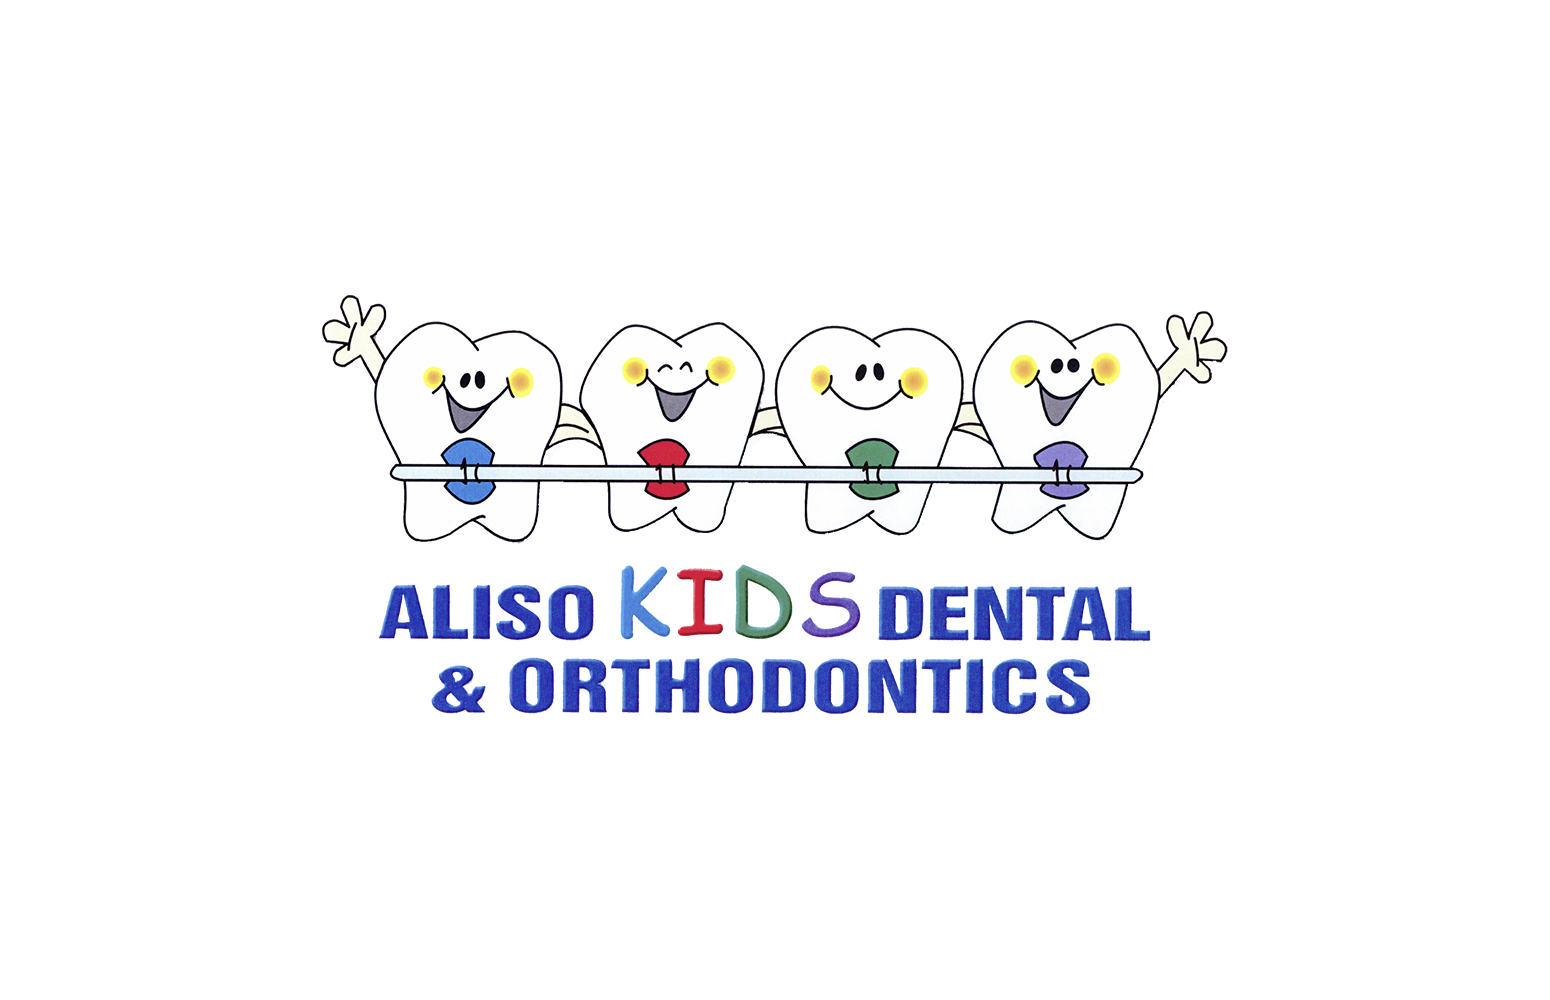 Aliso Kids Dental + Orthodontics